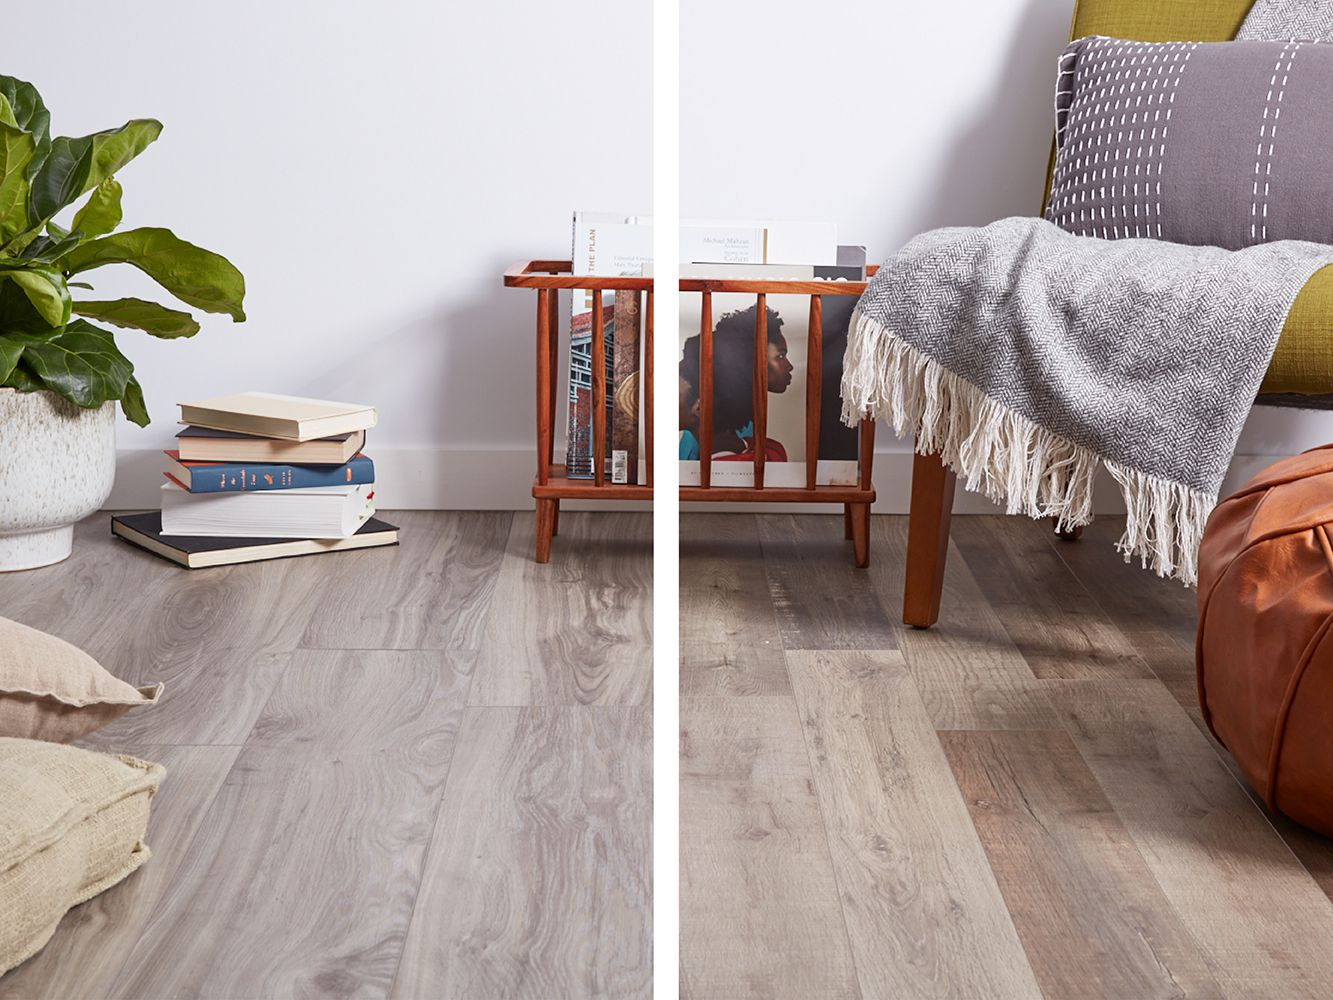 Know more information about wooden flooring: